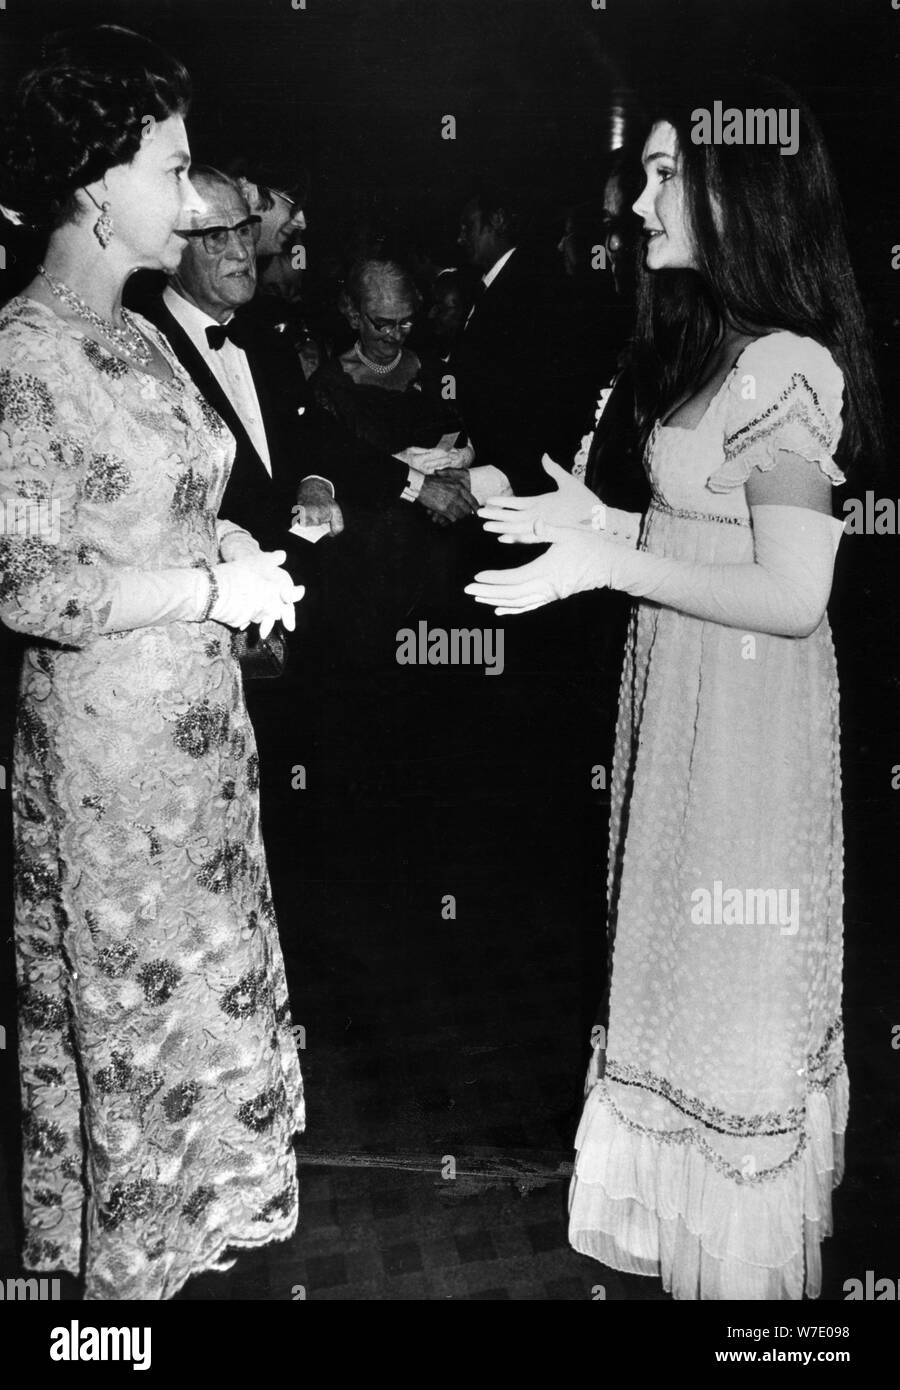 Fiona Fullerton meets the Queen at the premiere of 'Alice's Adventures in Wonderland', 1972. Artist: Unknown Stock Photo